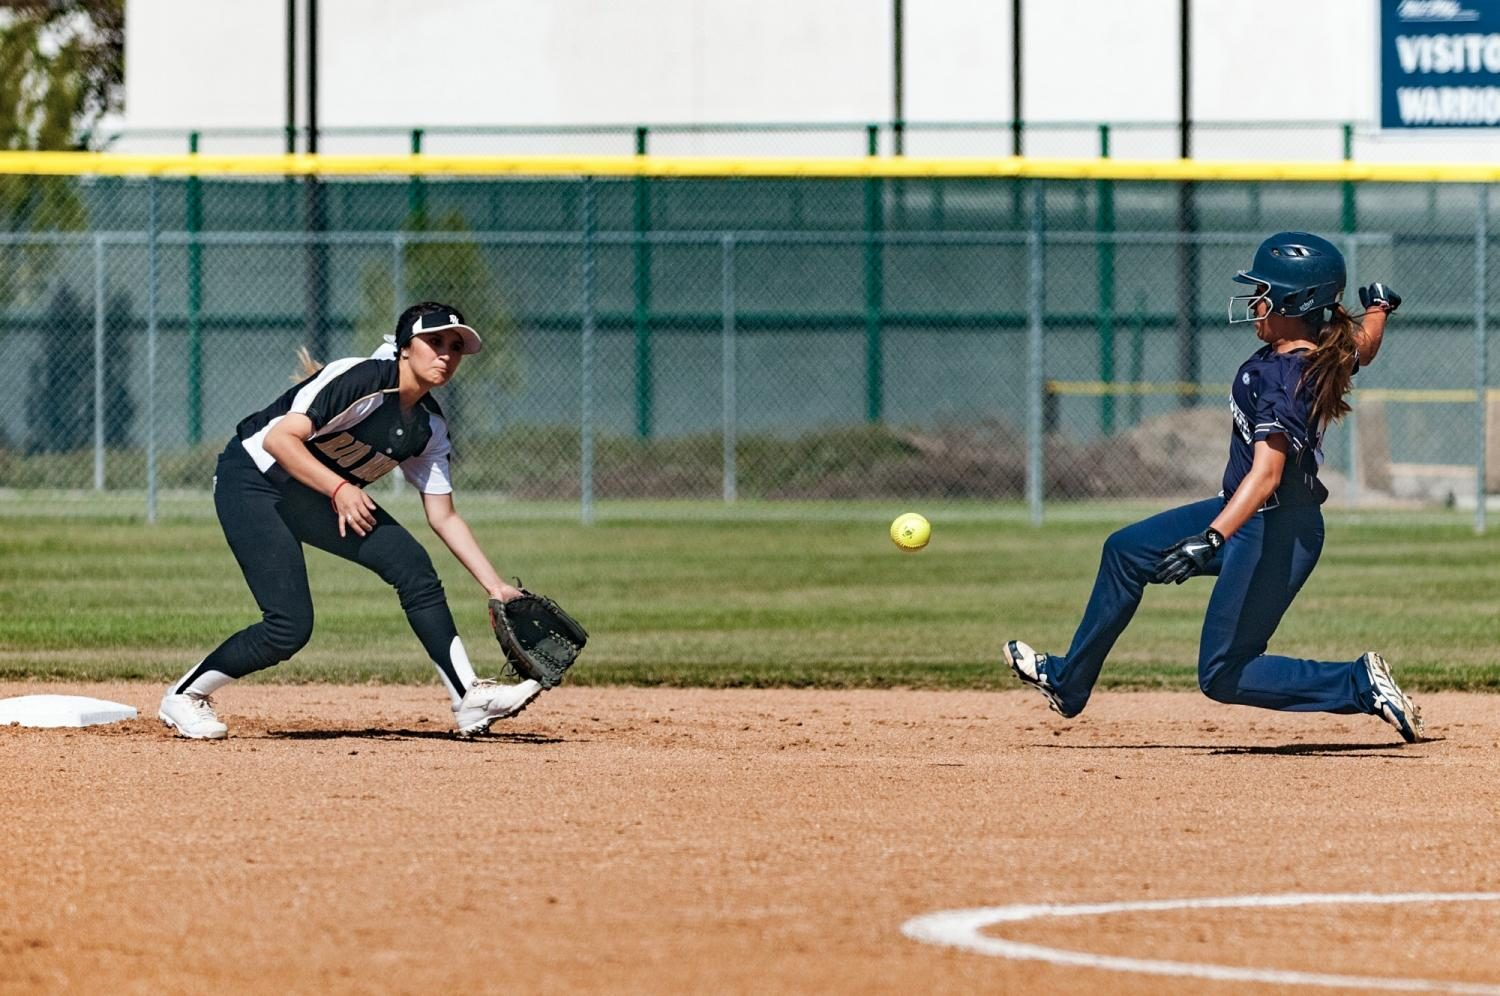 Freshman+catcher+Ashley+Machado+slides+into+second+base+against+Rio+Hondo+College+on+Tuesday%2C+April+4+at+the+EC+softball+field.+Photo+credit%3A+Osvaldo+Deras